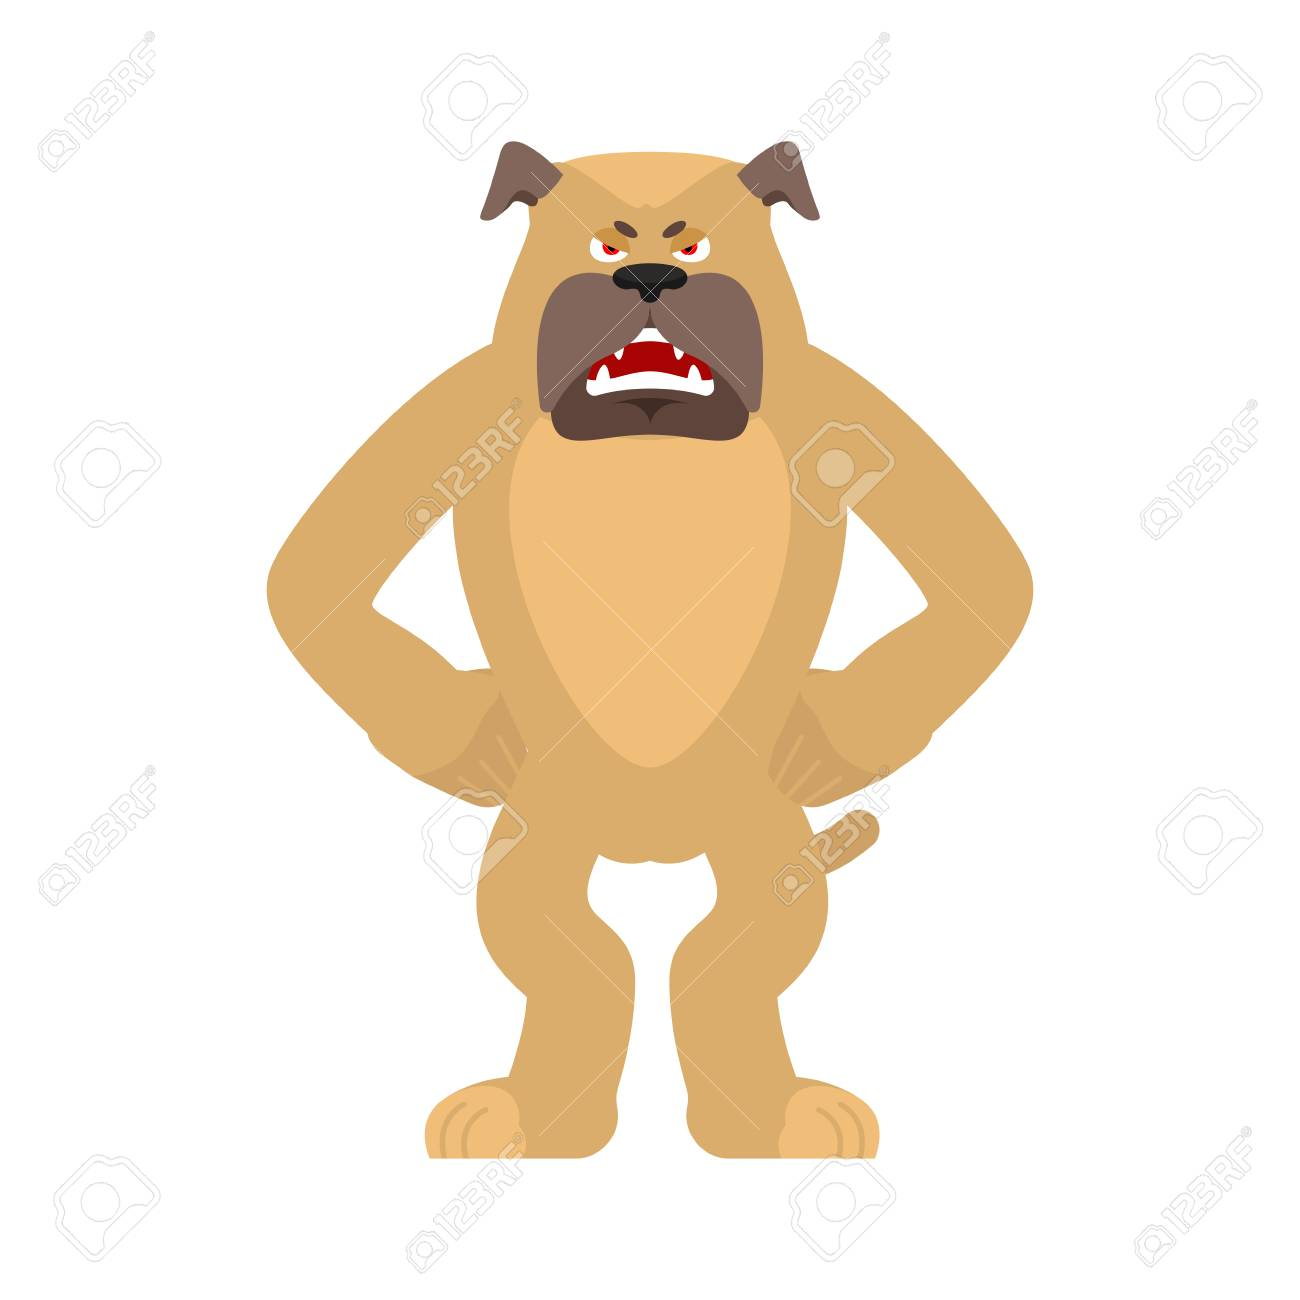 Dog angry  Pet evil emoji avatar  bulldog aggressive vector illustration